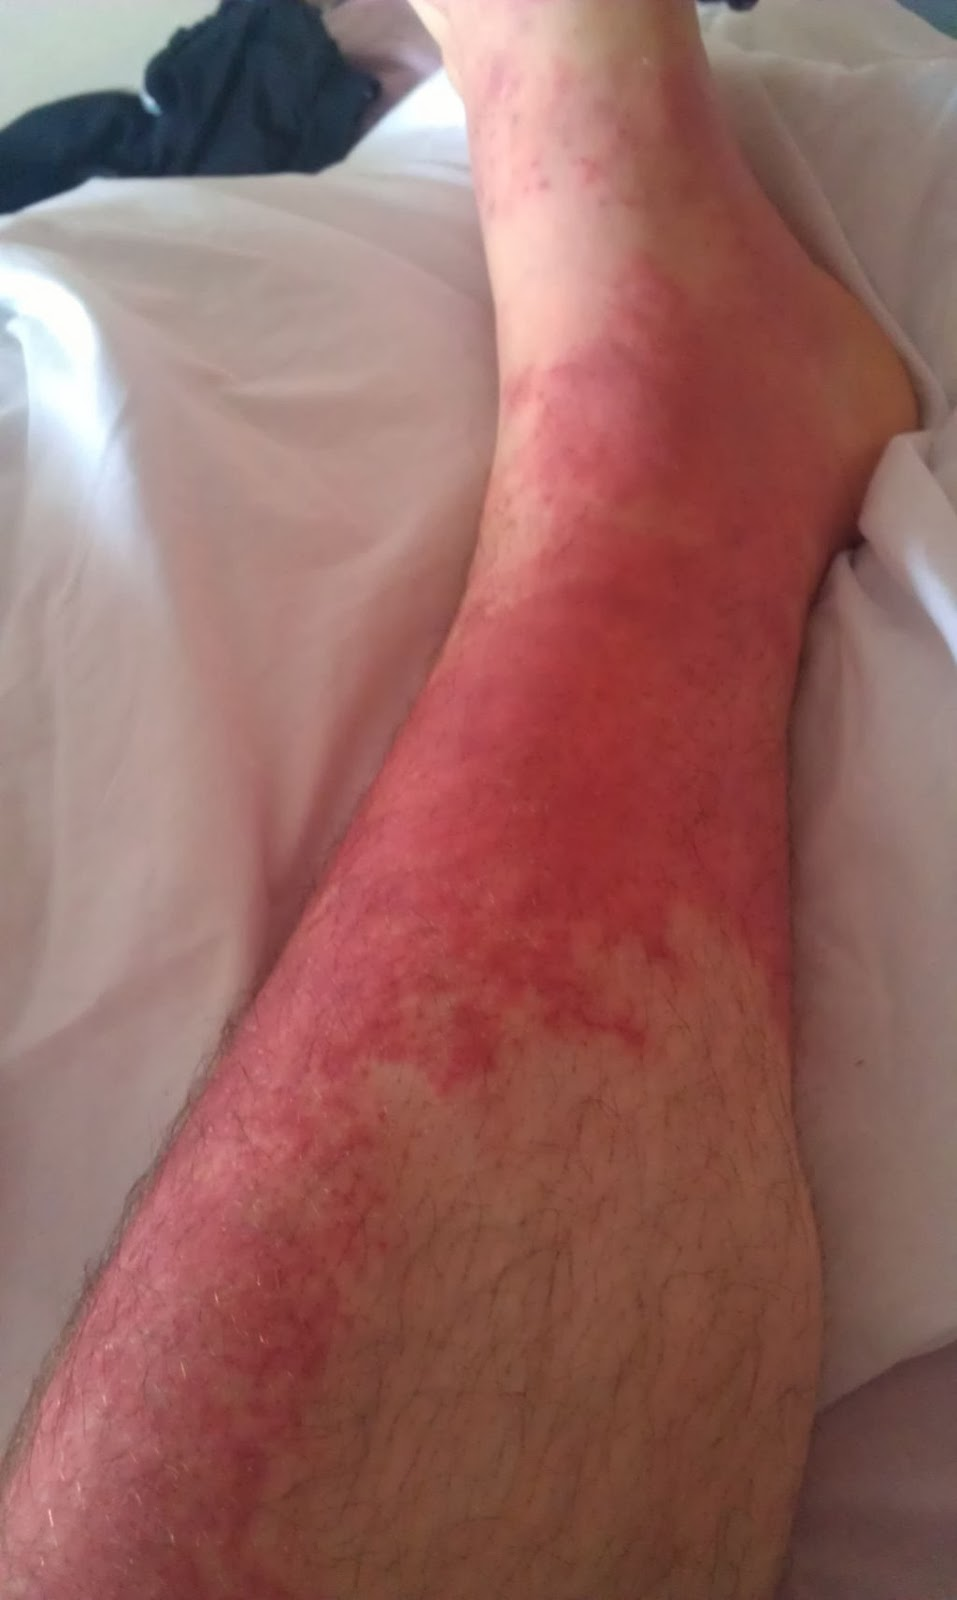 Foot swelling and Redness - Right Diagnosis